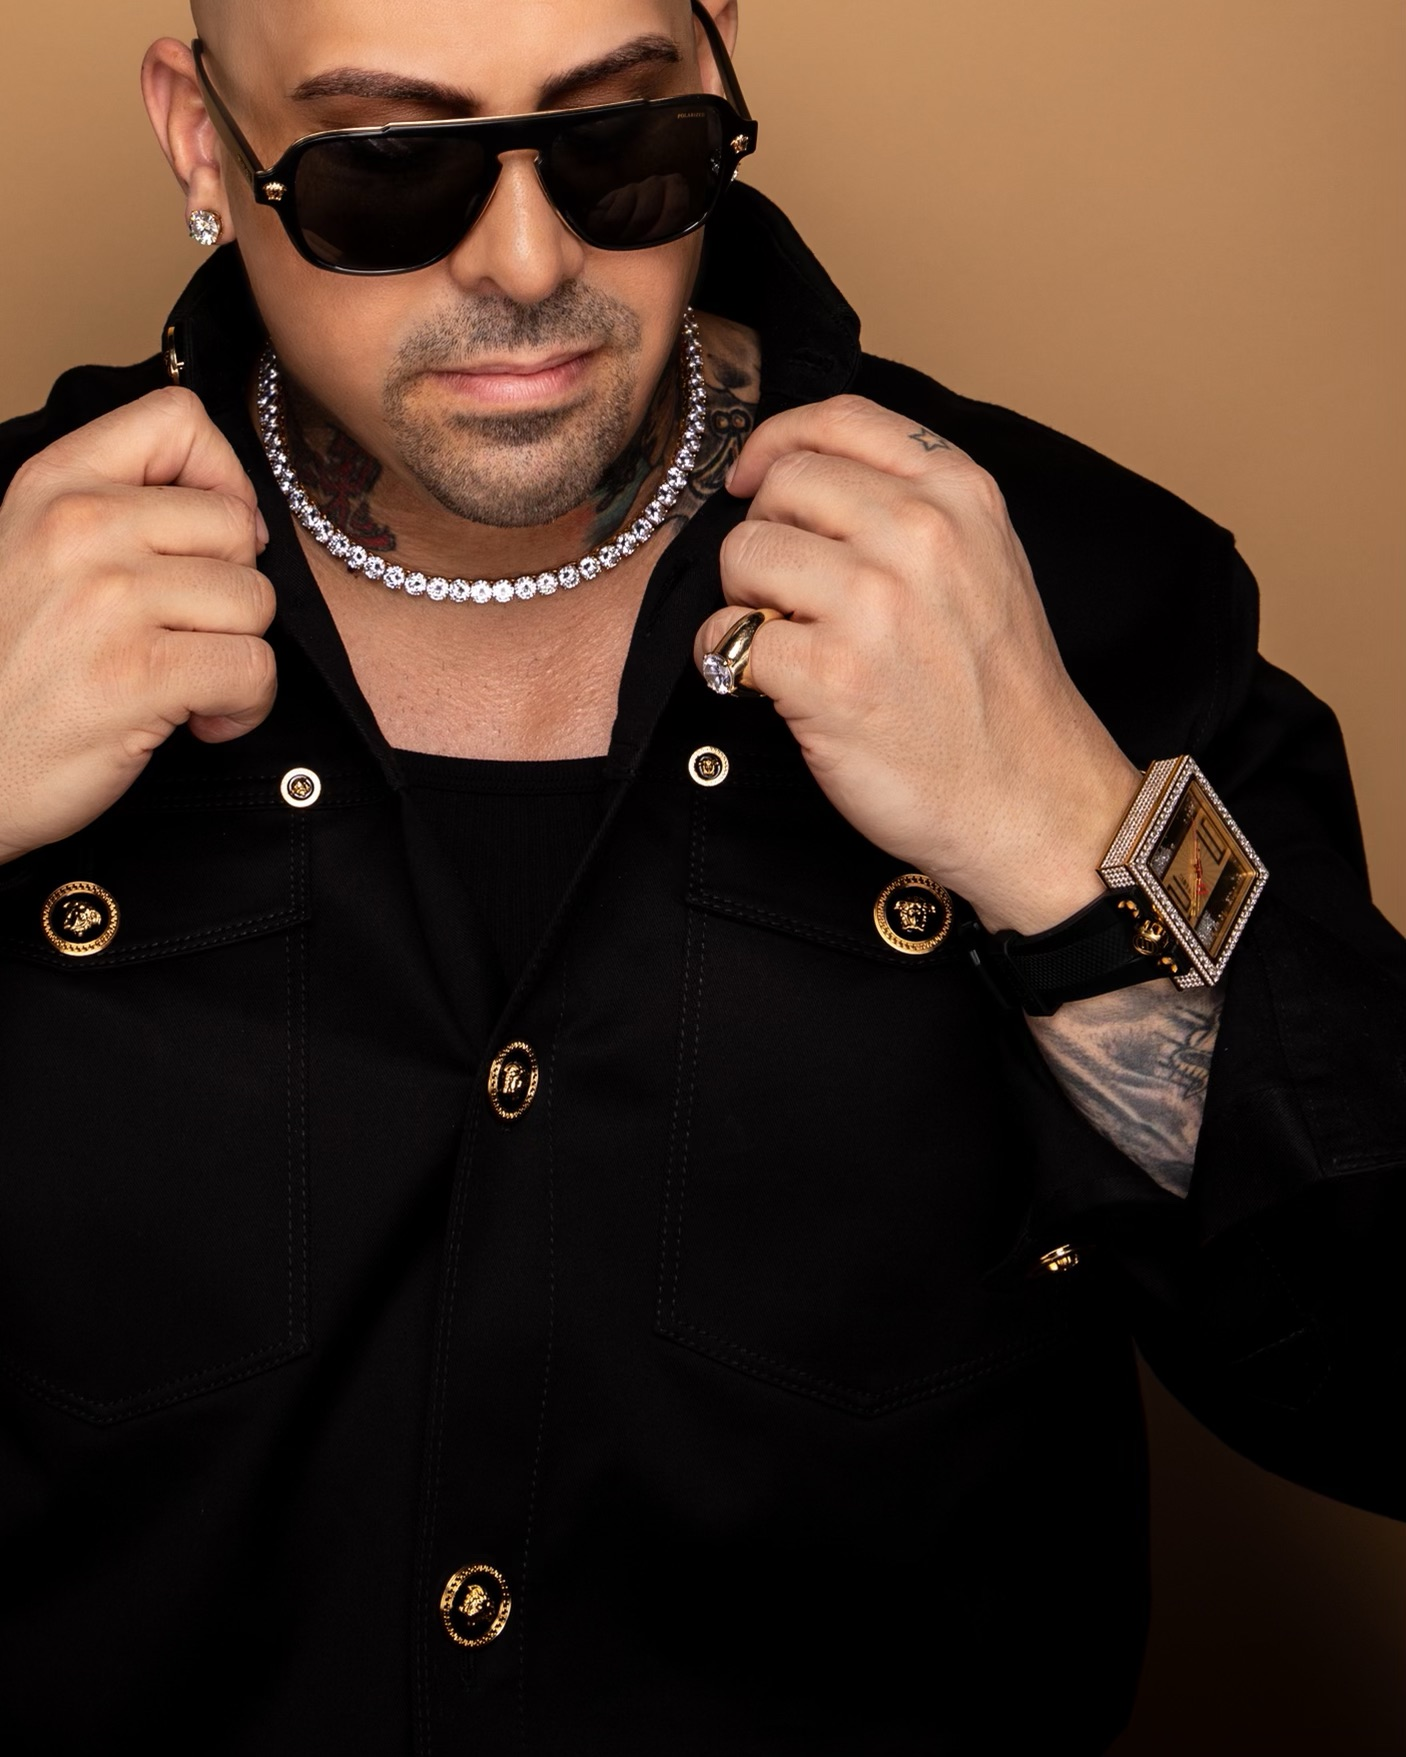 Hip Hop Star Mally Mall - A Philanthropist With A Heart Of Gold